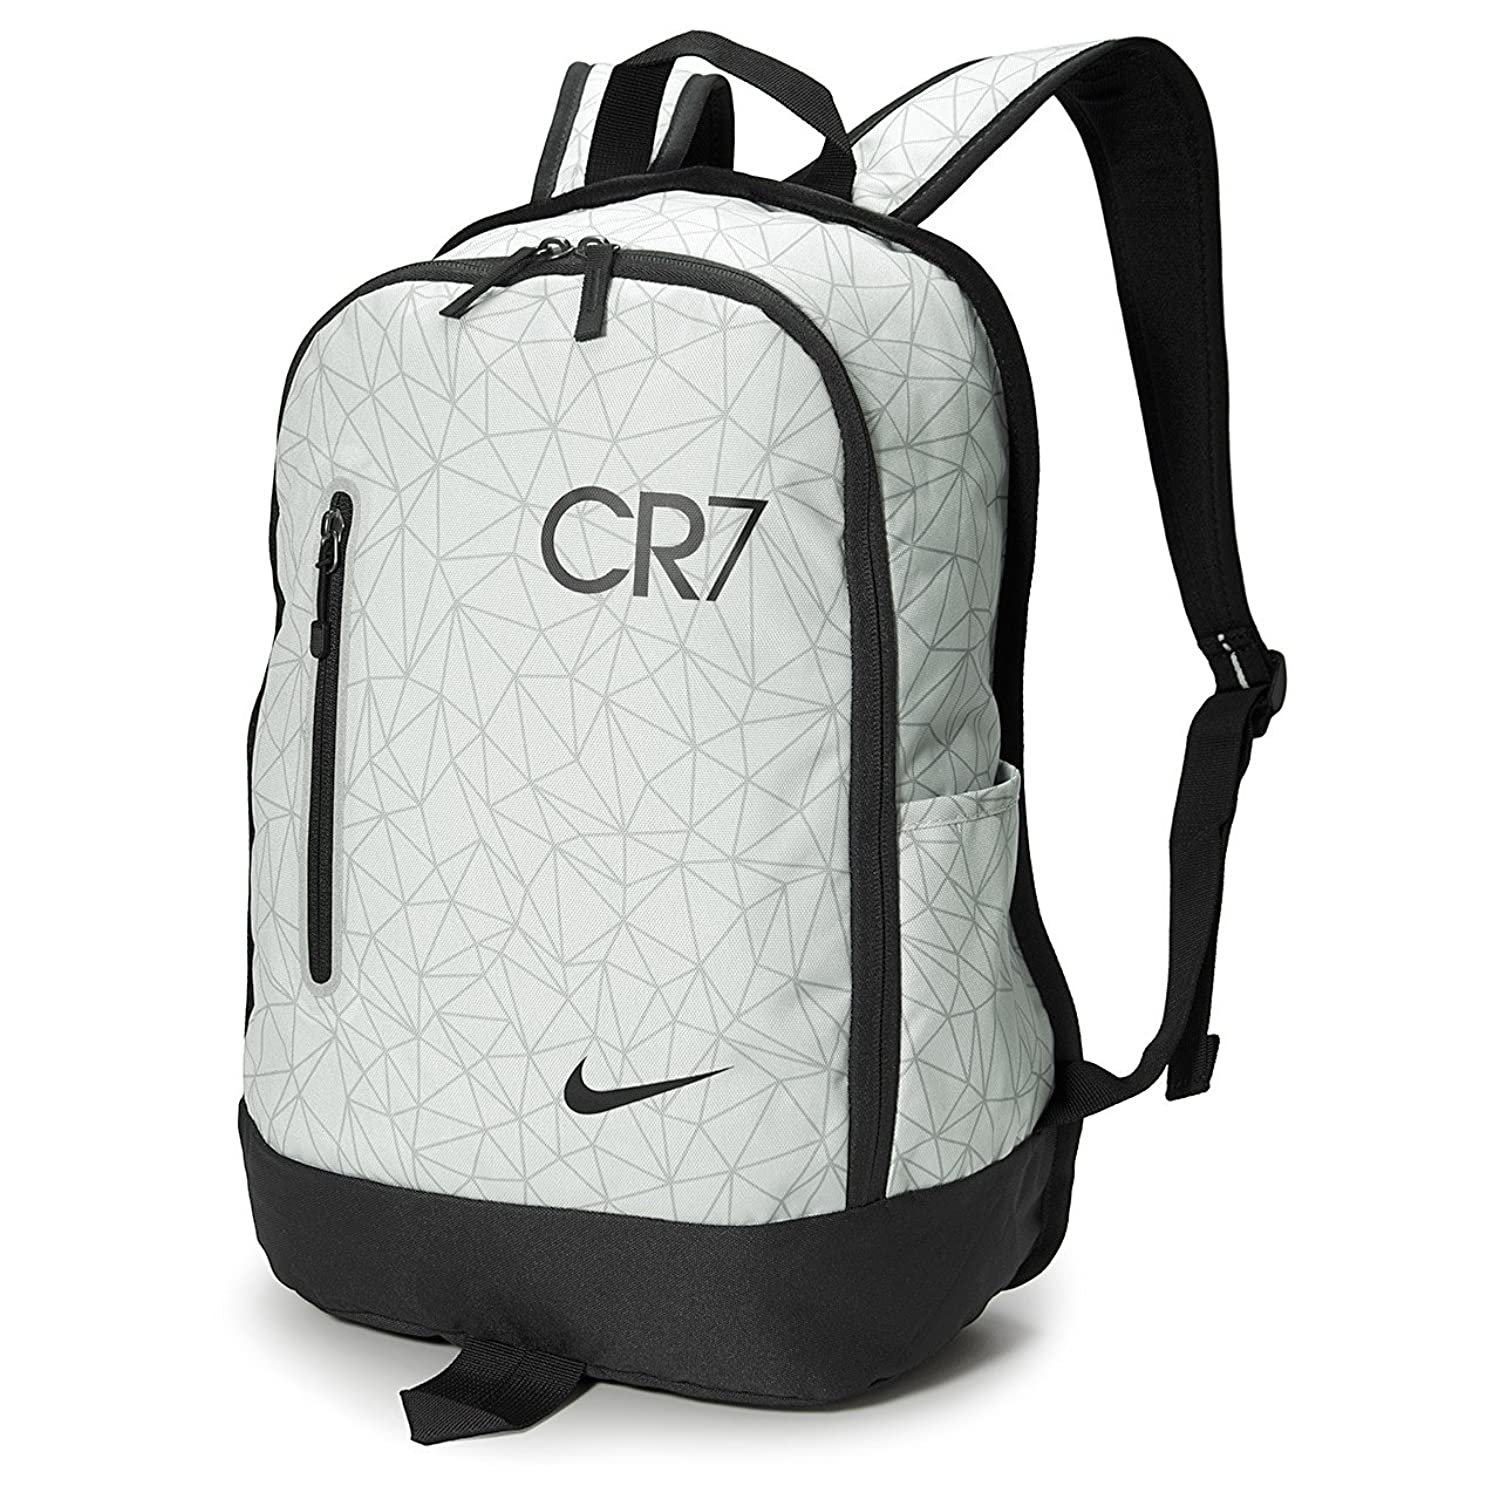 f6d2dd76fbeb ... Amazon.com Nike Youth CR7 Football Backpack PURE PLATINUMBLACKBLACK  (MISC) Sports Outdoors new ...